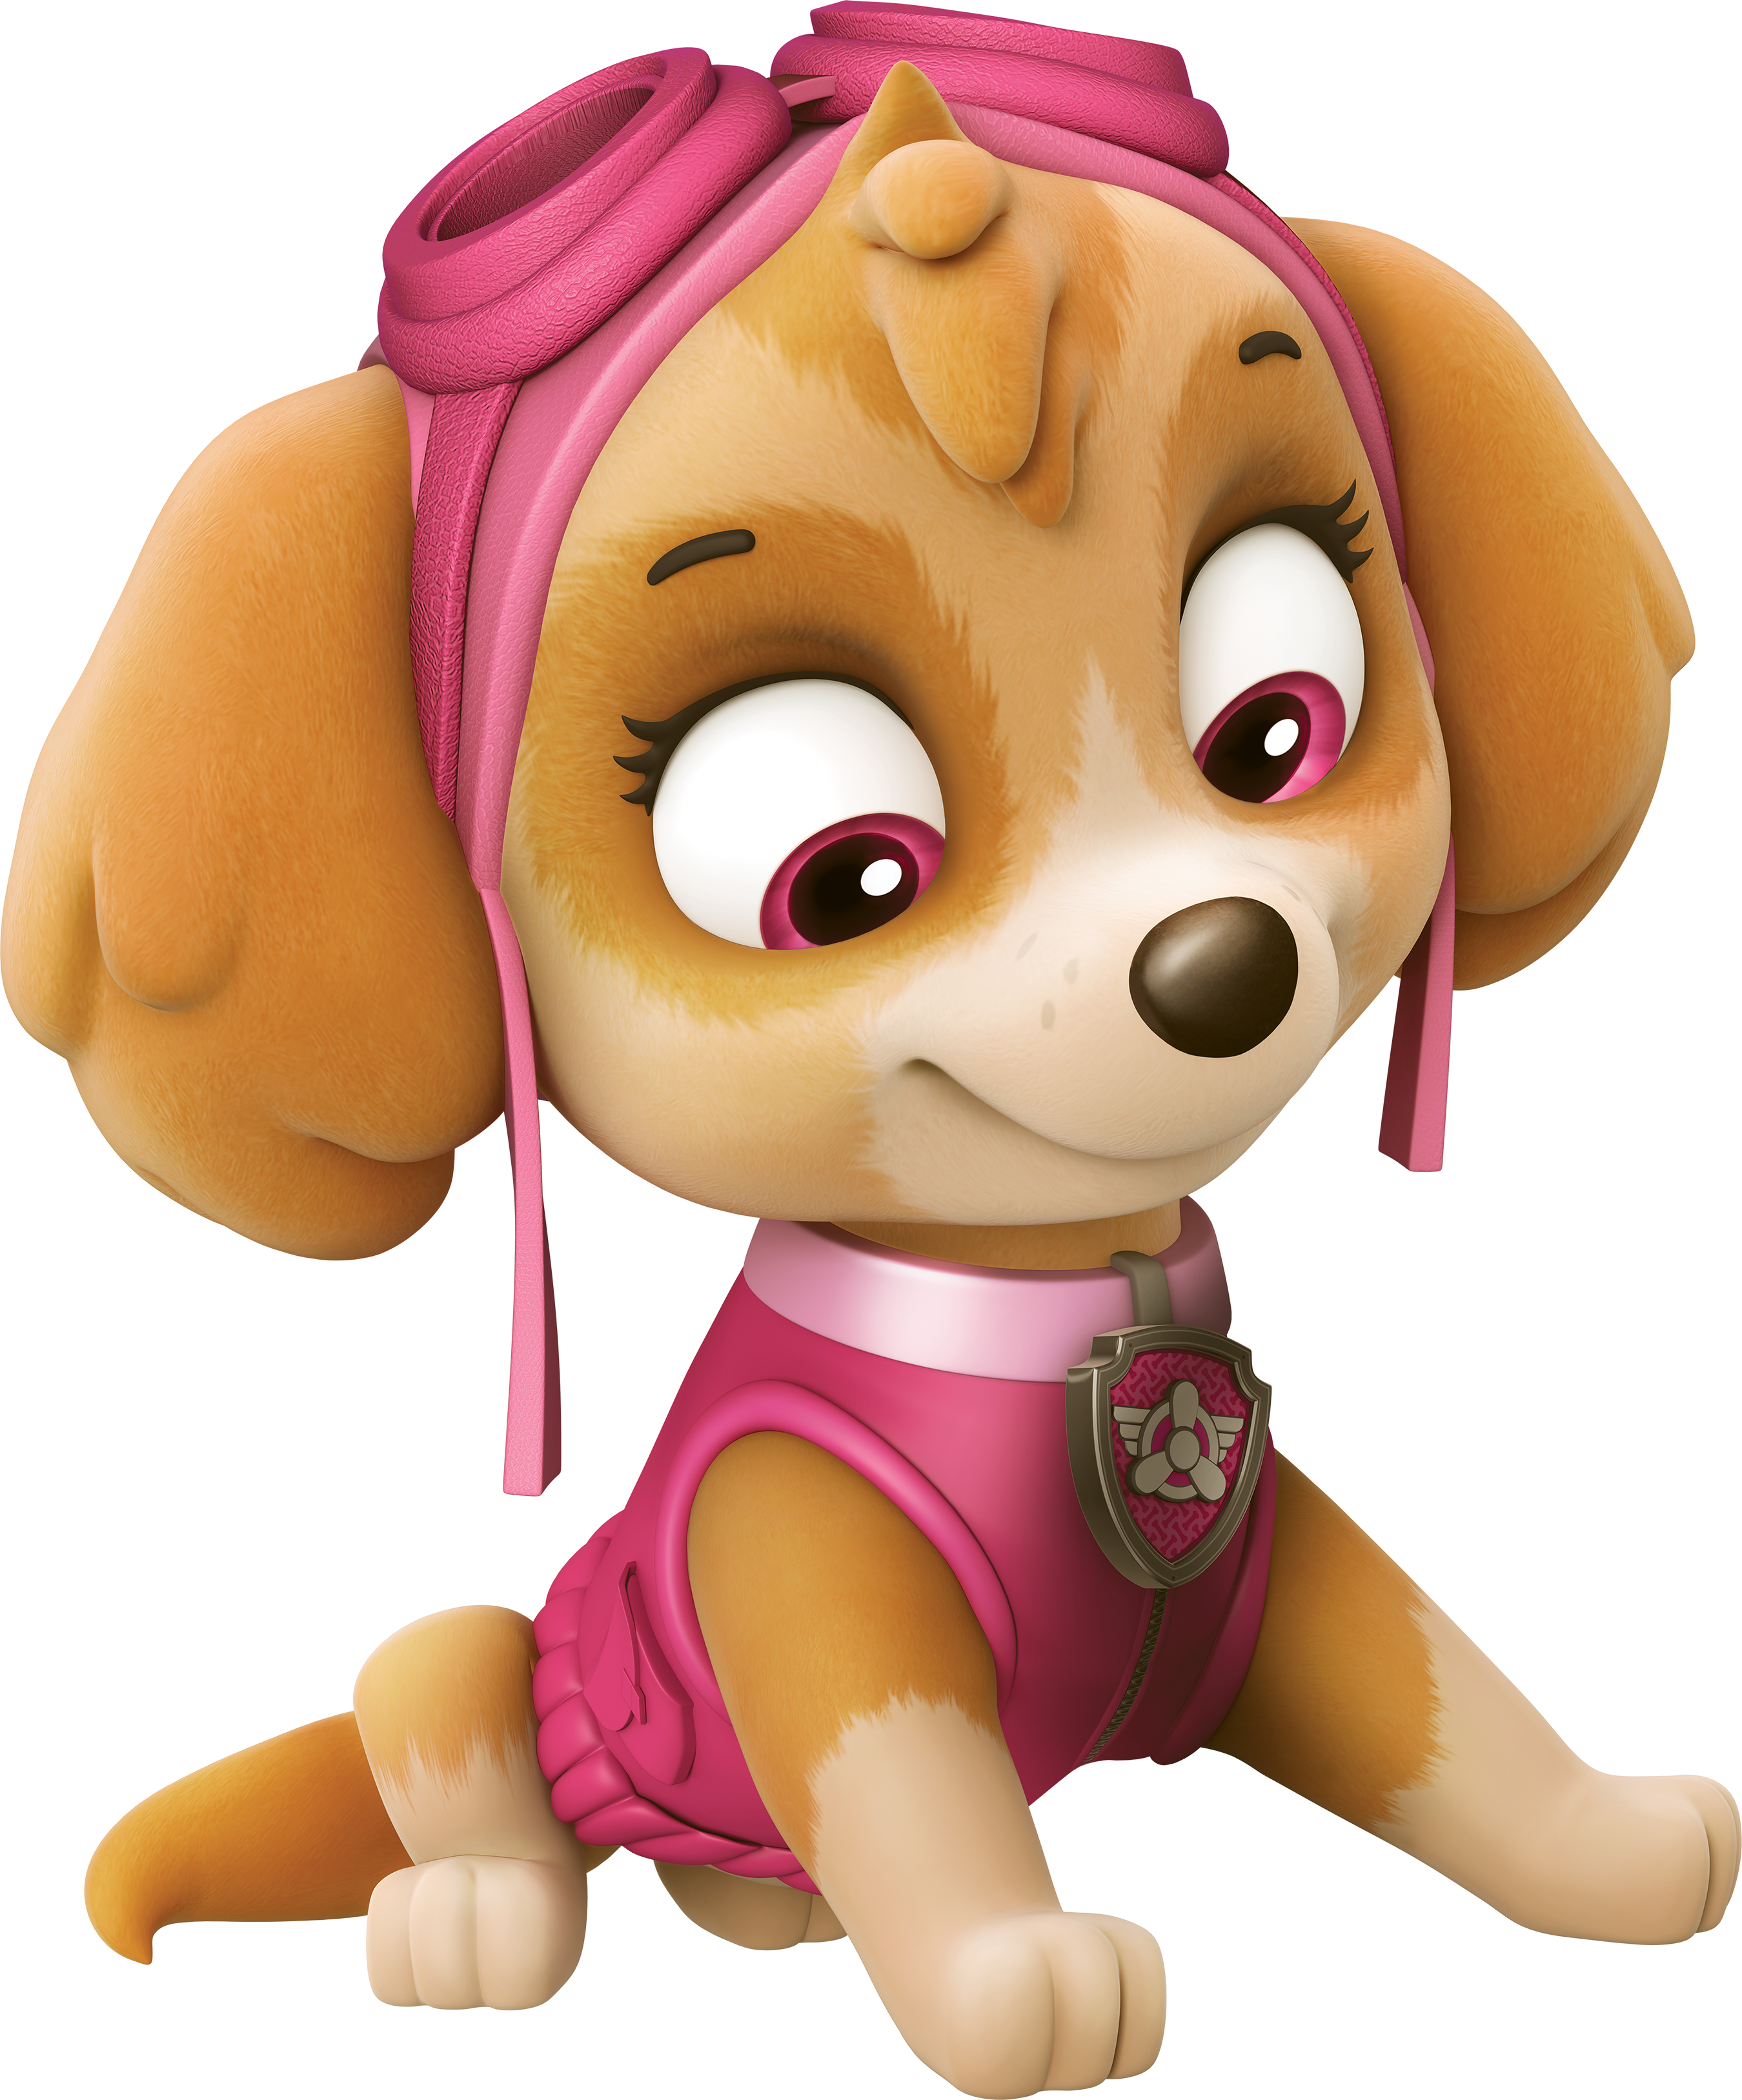 Skye patrulha canina png clipart images gallery for free.